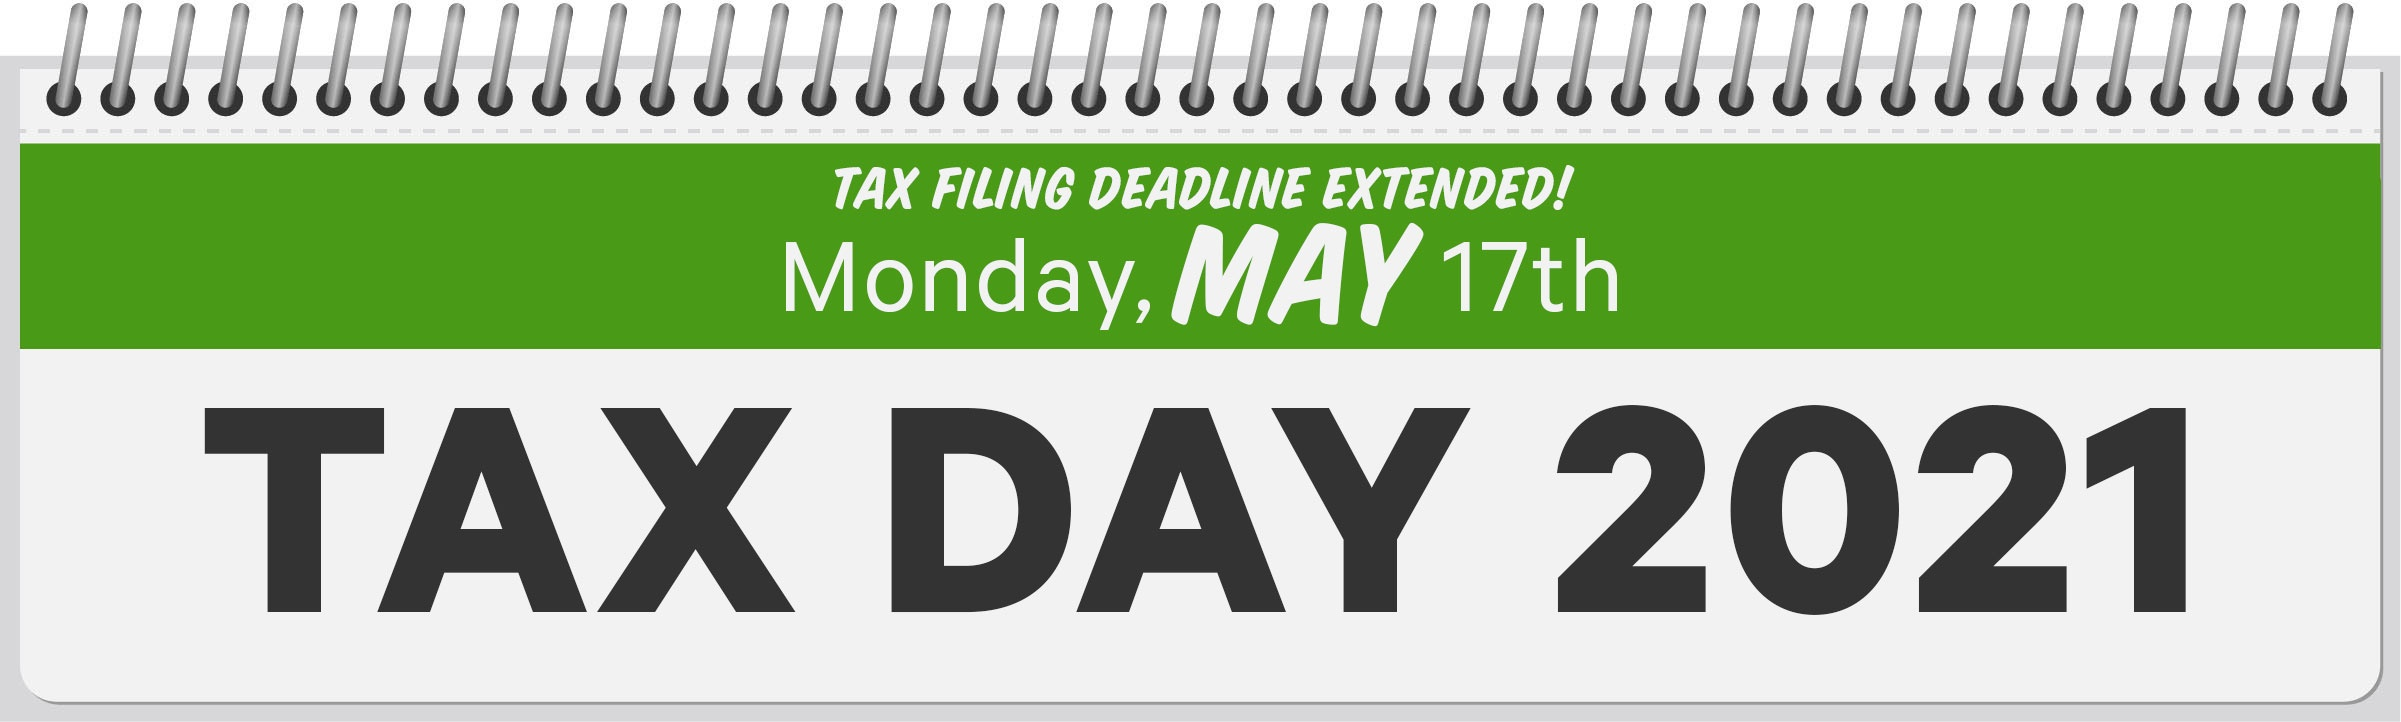 2021 Tax Deadline is Monday, May 17